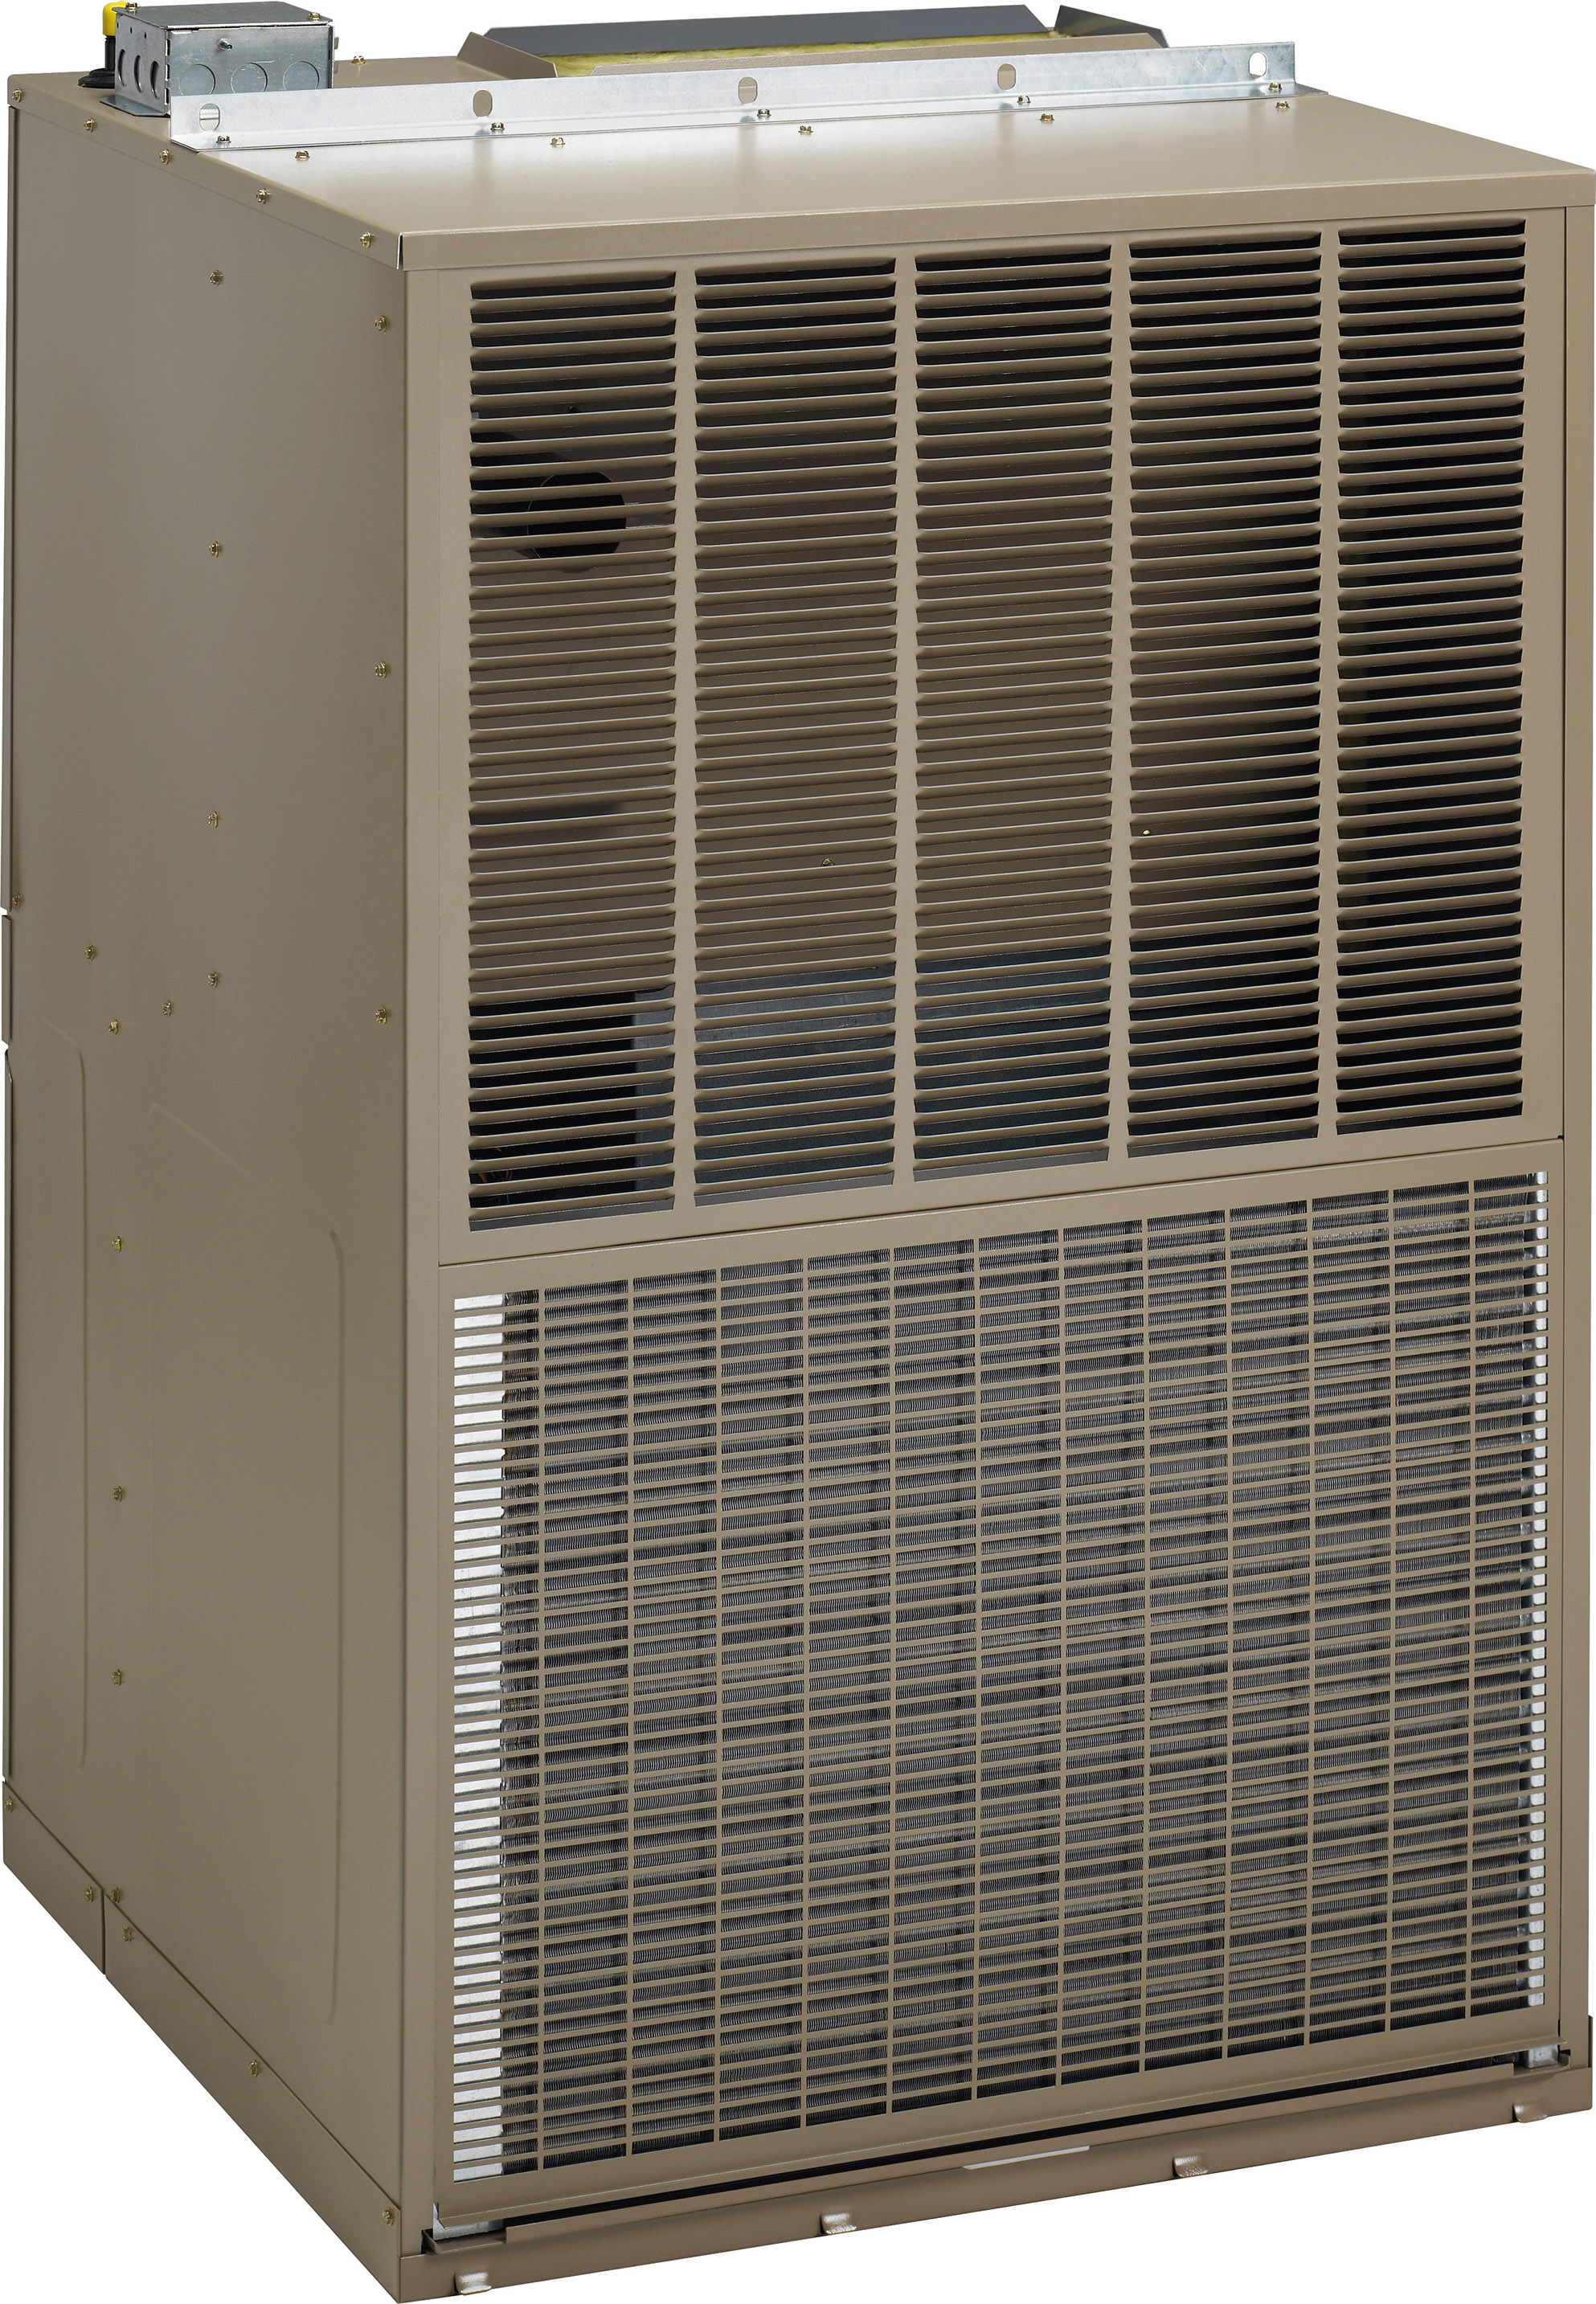 Heating And Cooling Units : Magic pak all climate mechanical heating cooling